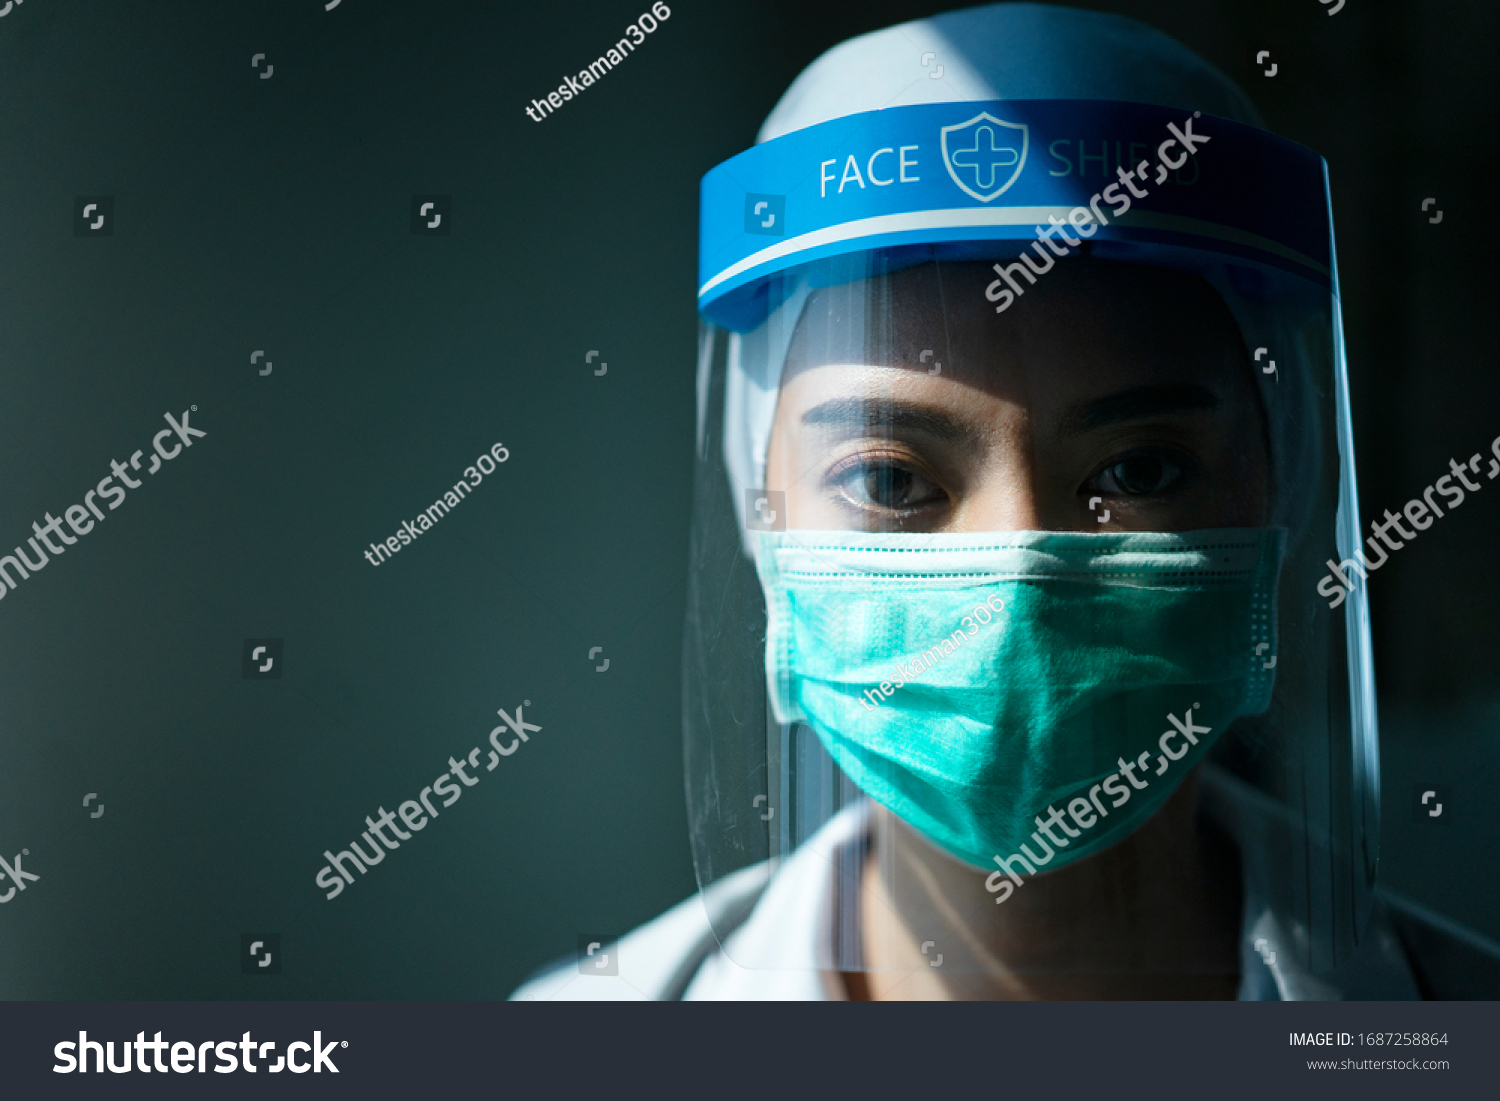 Closeup Asian female Doctor wearing face shield and PPE suit for Coronavirus outbreak or Covid-19, Concept of Covid-19 quarantine #1687258864